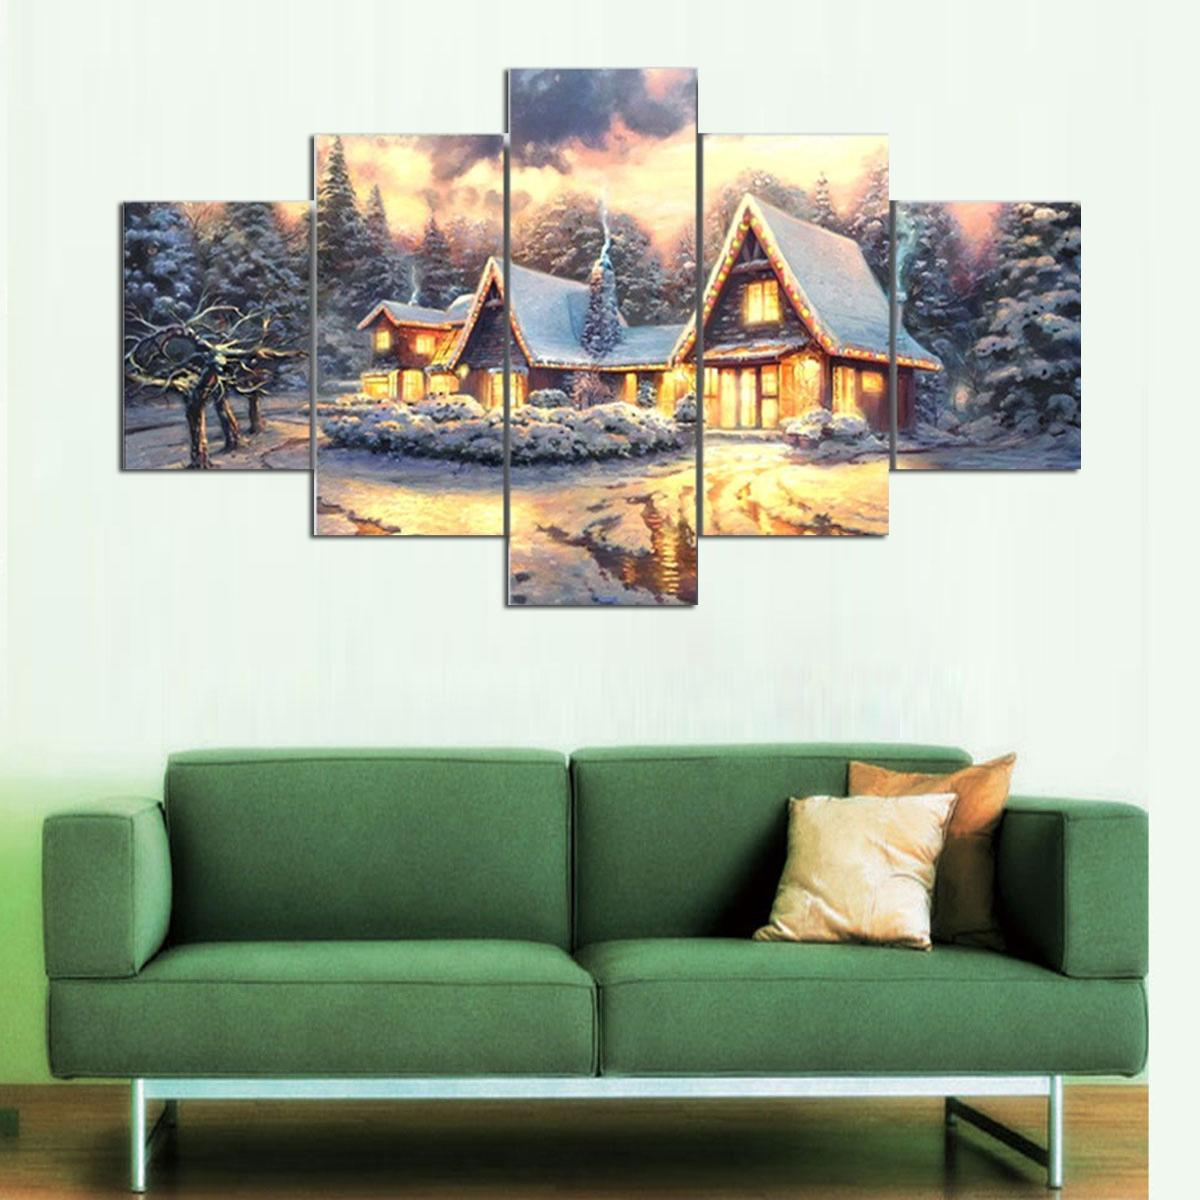 Thomas Kinkade Christmas Cottage,Home Decor HD Printed Modern Art Painting on Canvas Unframed/Framed